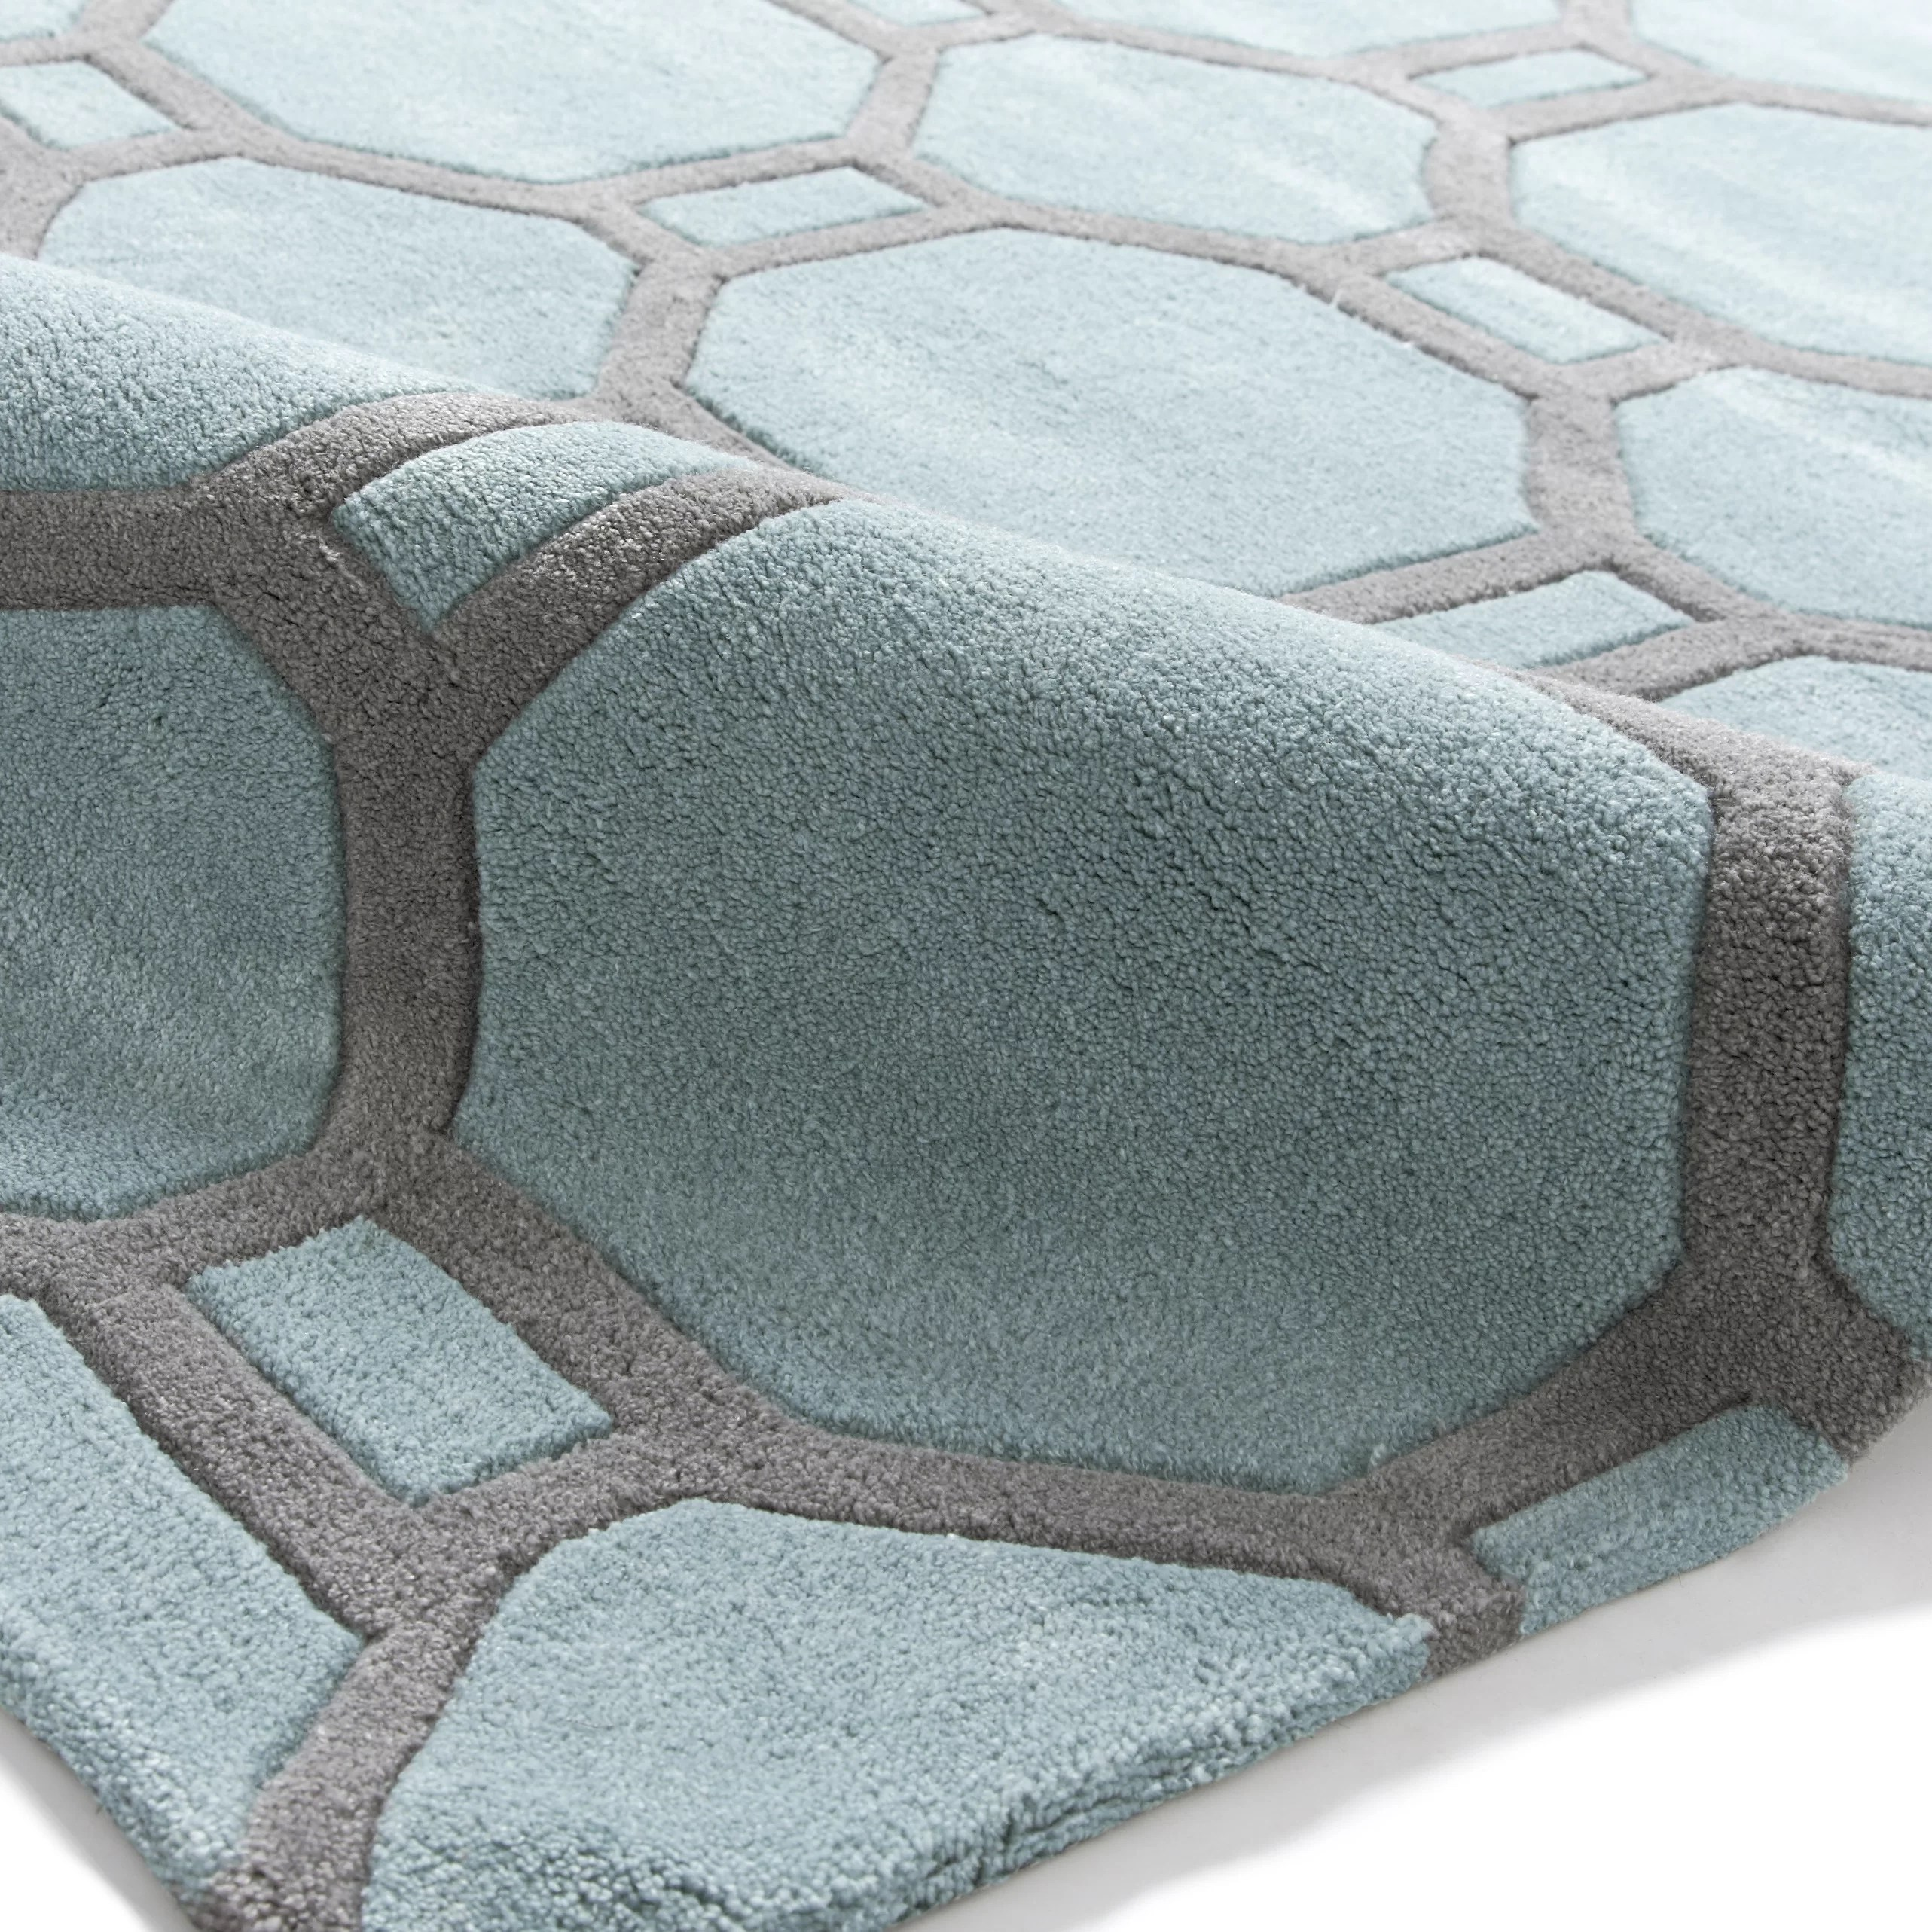 wayfair sofa reviews ben 10 set with chair and table think rugs hong kong hand-tufted duck egg blue area rug ...